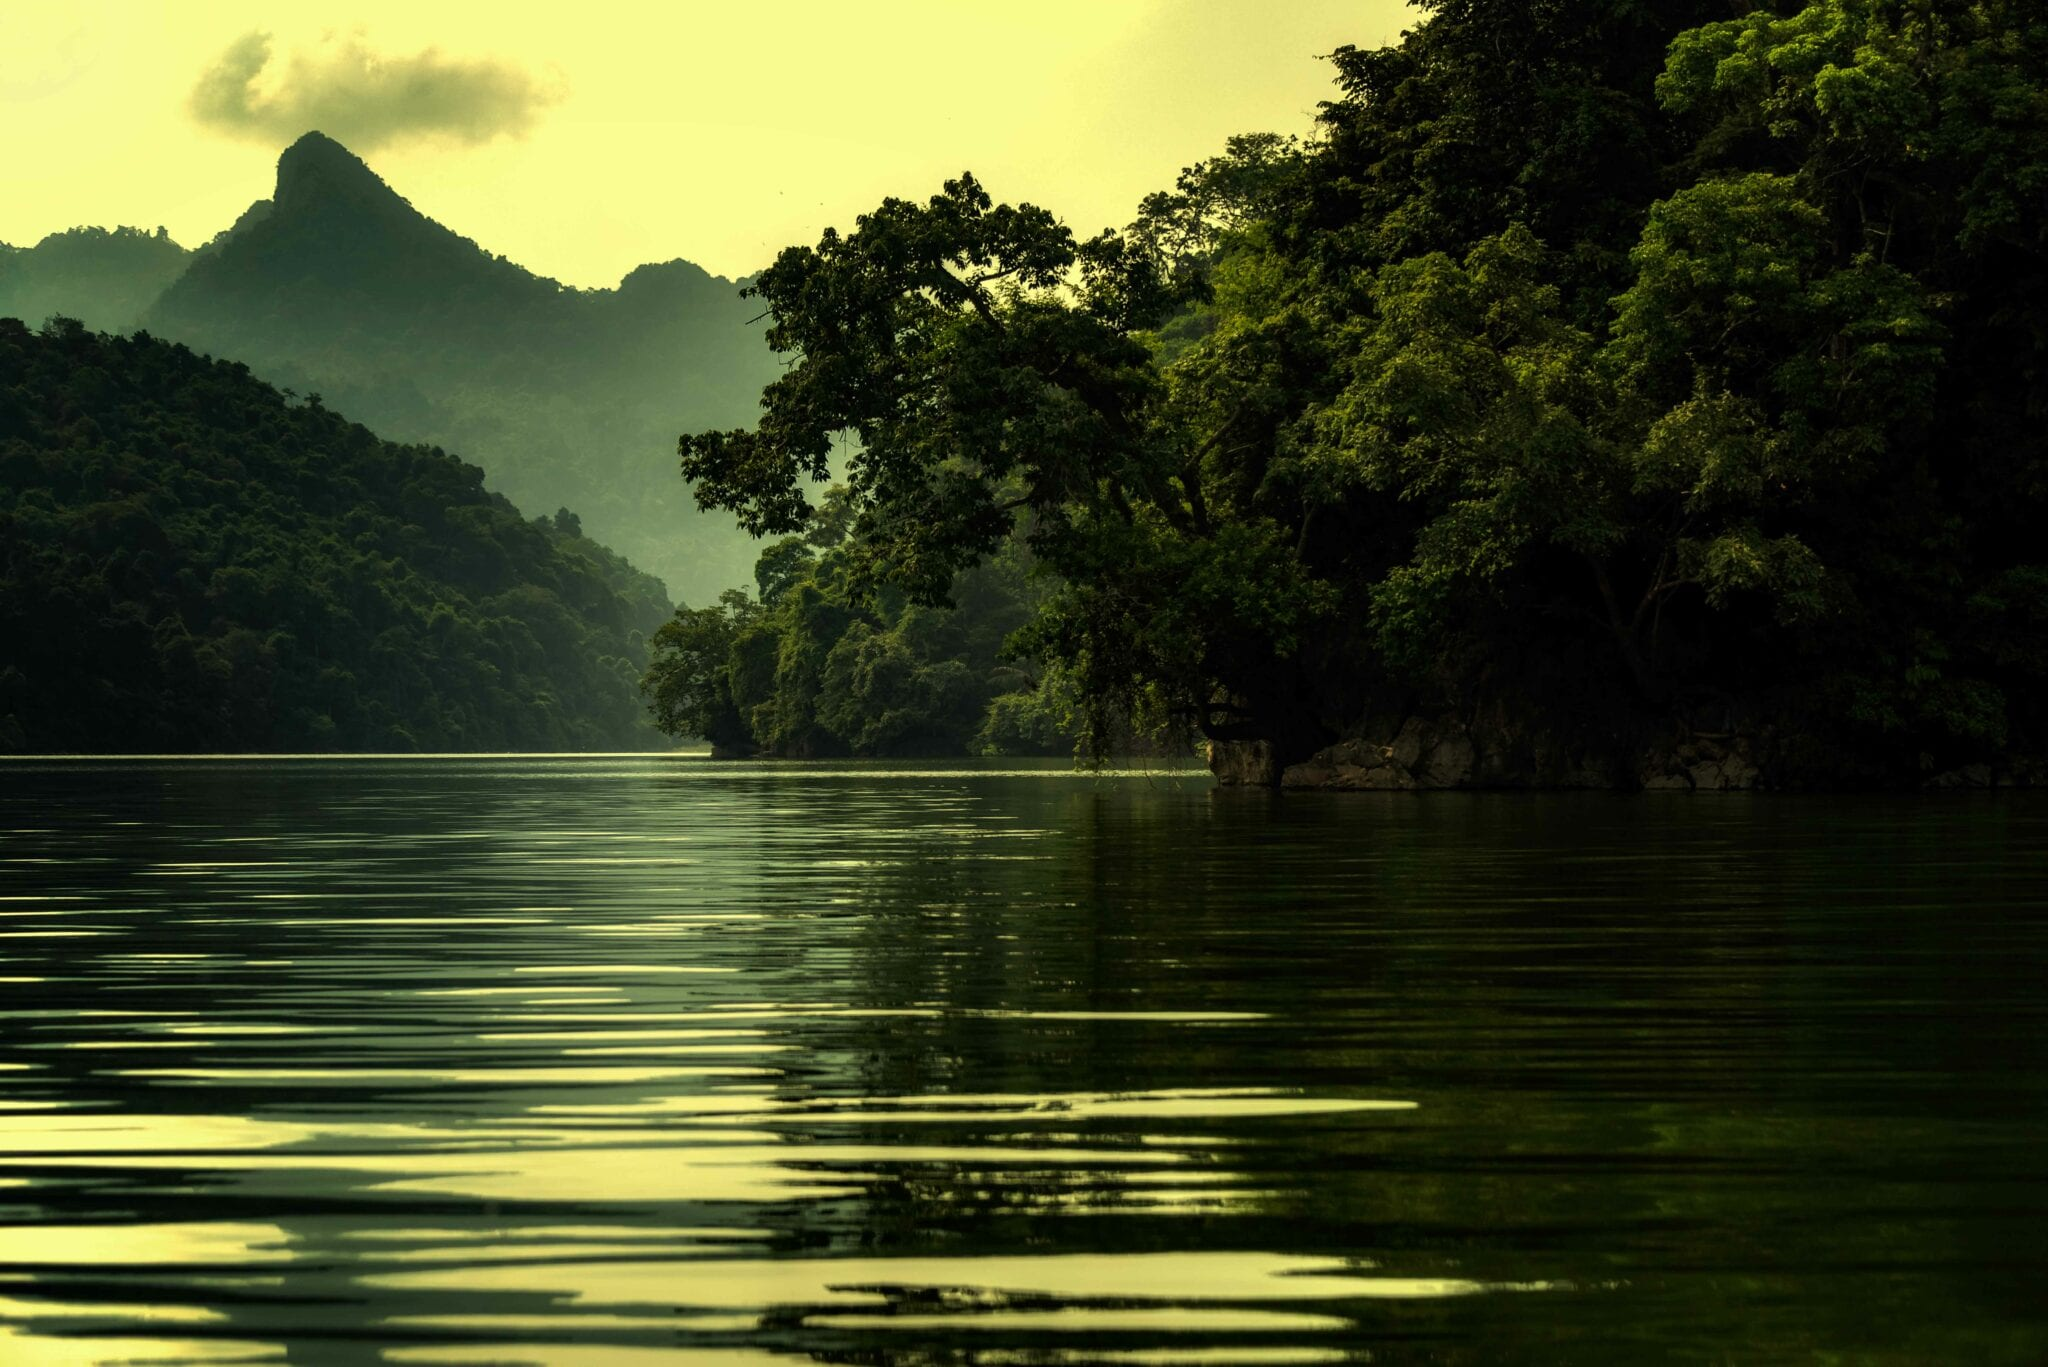 Image of the lake in Ba Bê National Park in Vietnam